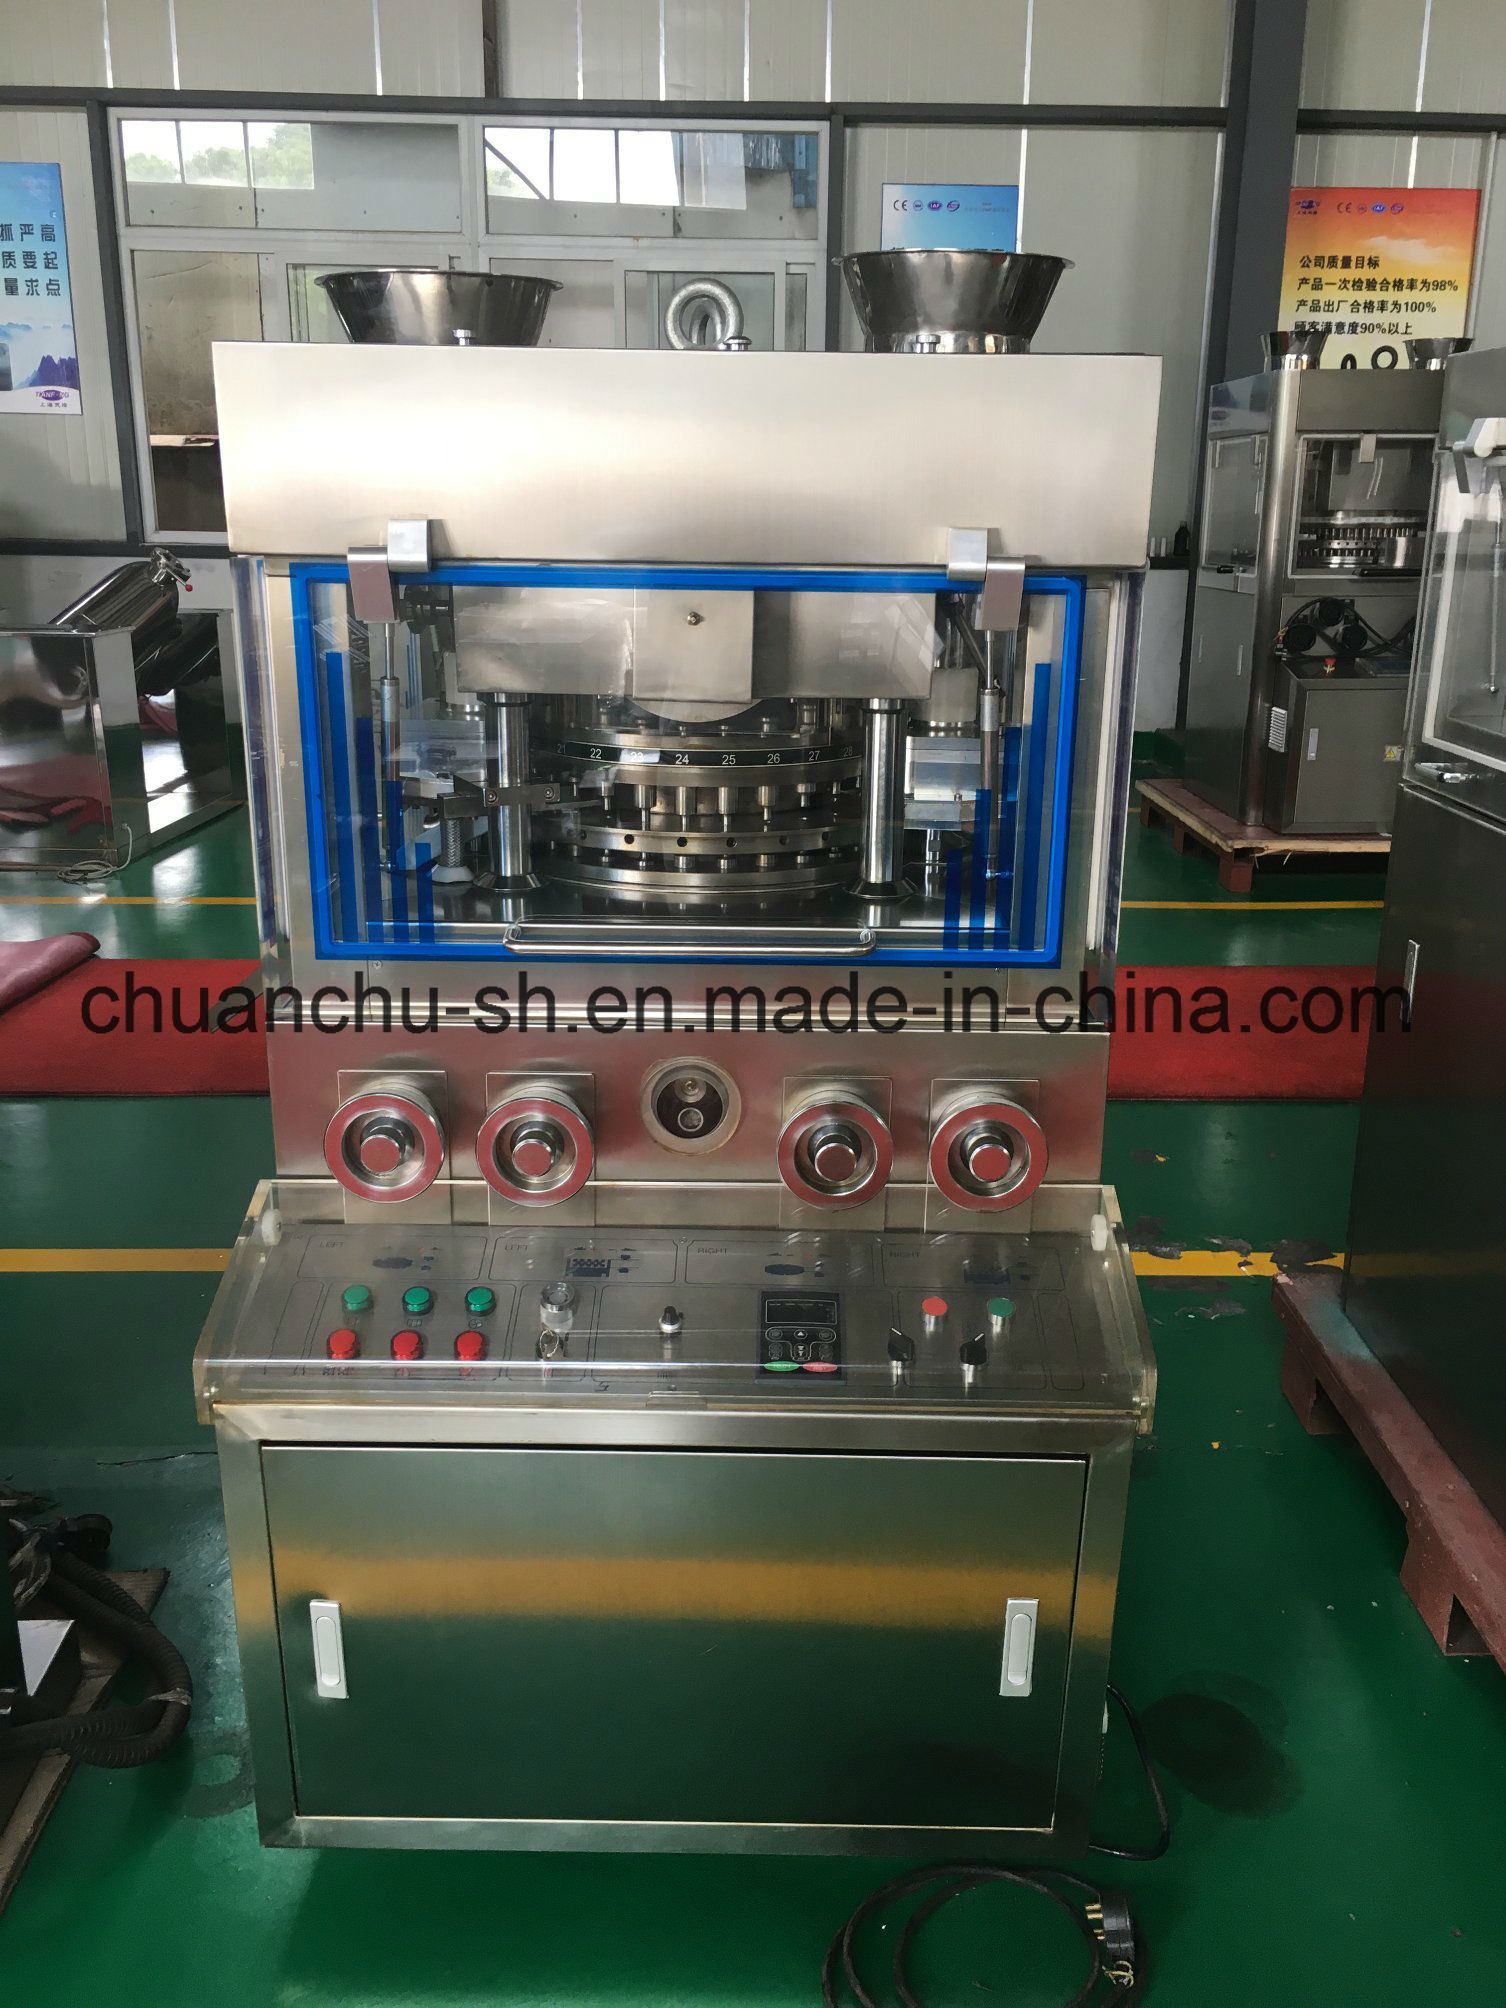 Rotary Tablet Press Machine Zpw29 / Zpw31 for Salt/Spiruline/Candy/Pill/Grain